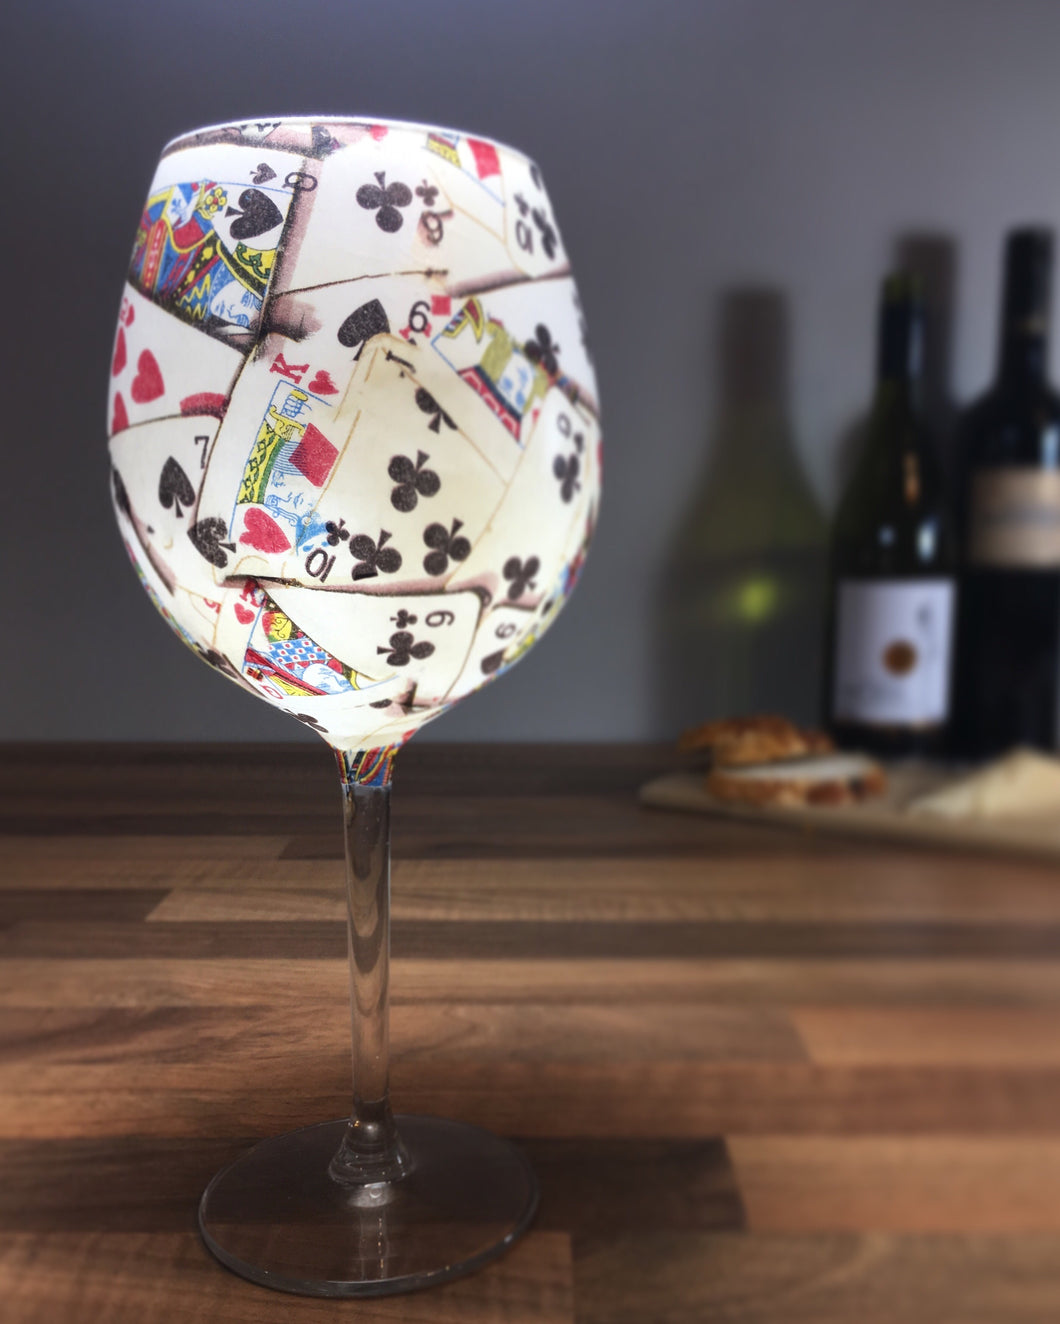 From Loft to Loved - gift for her - gift for women - gift for him - gift for men - playing card in white long stemmed large wine glass - handcrafted gift - decorative glass - unique drinker's gift - patterned wine glass - shop in Sedgefield County Durham